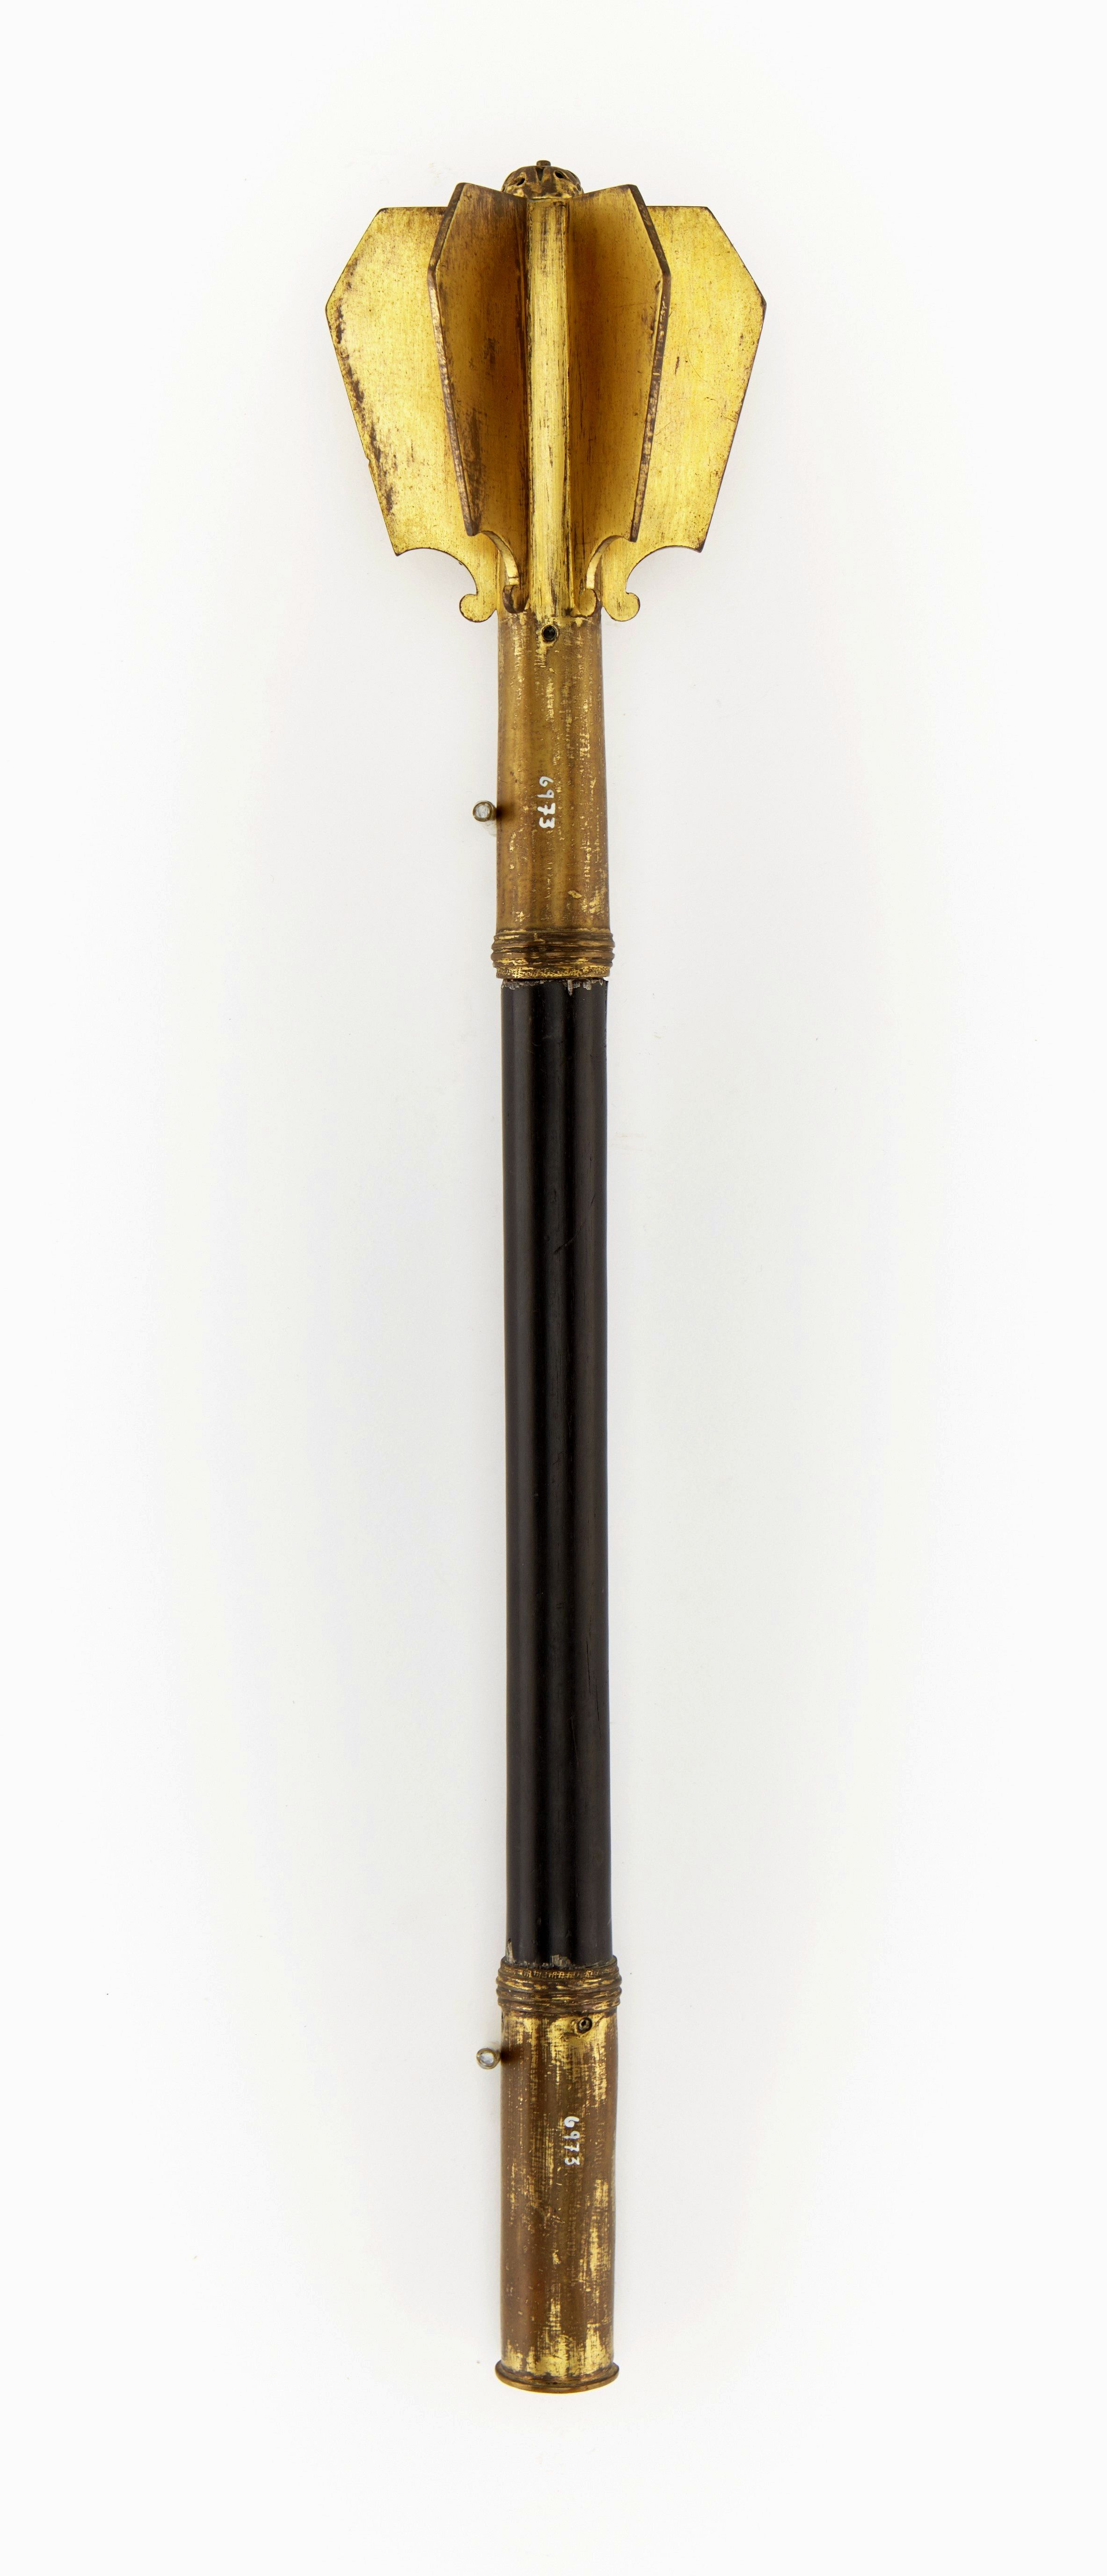 Mace of gilded brass by Anonymous from Poland or Central Europe, beginning of the 17th century, Skoklosters slott